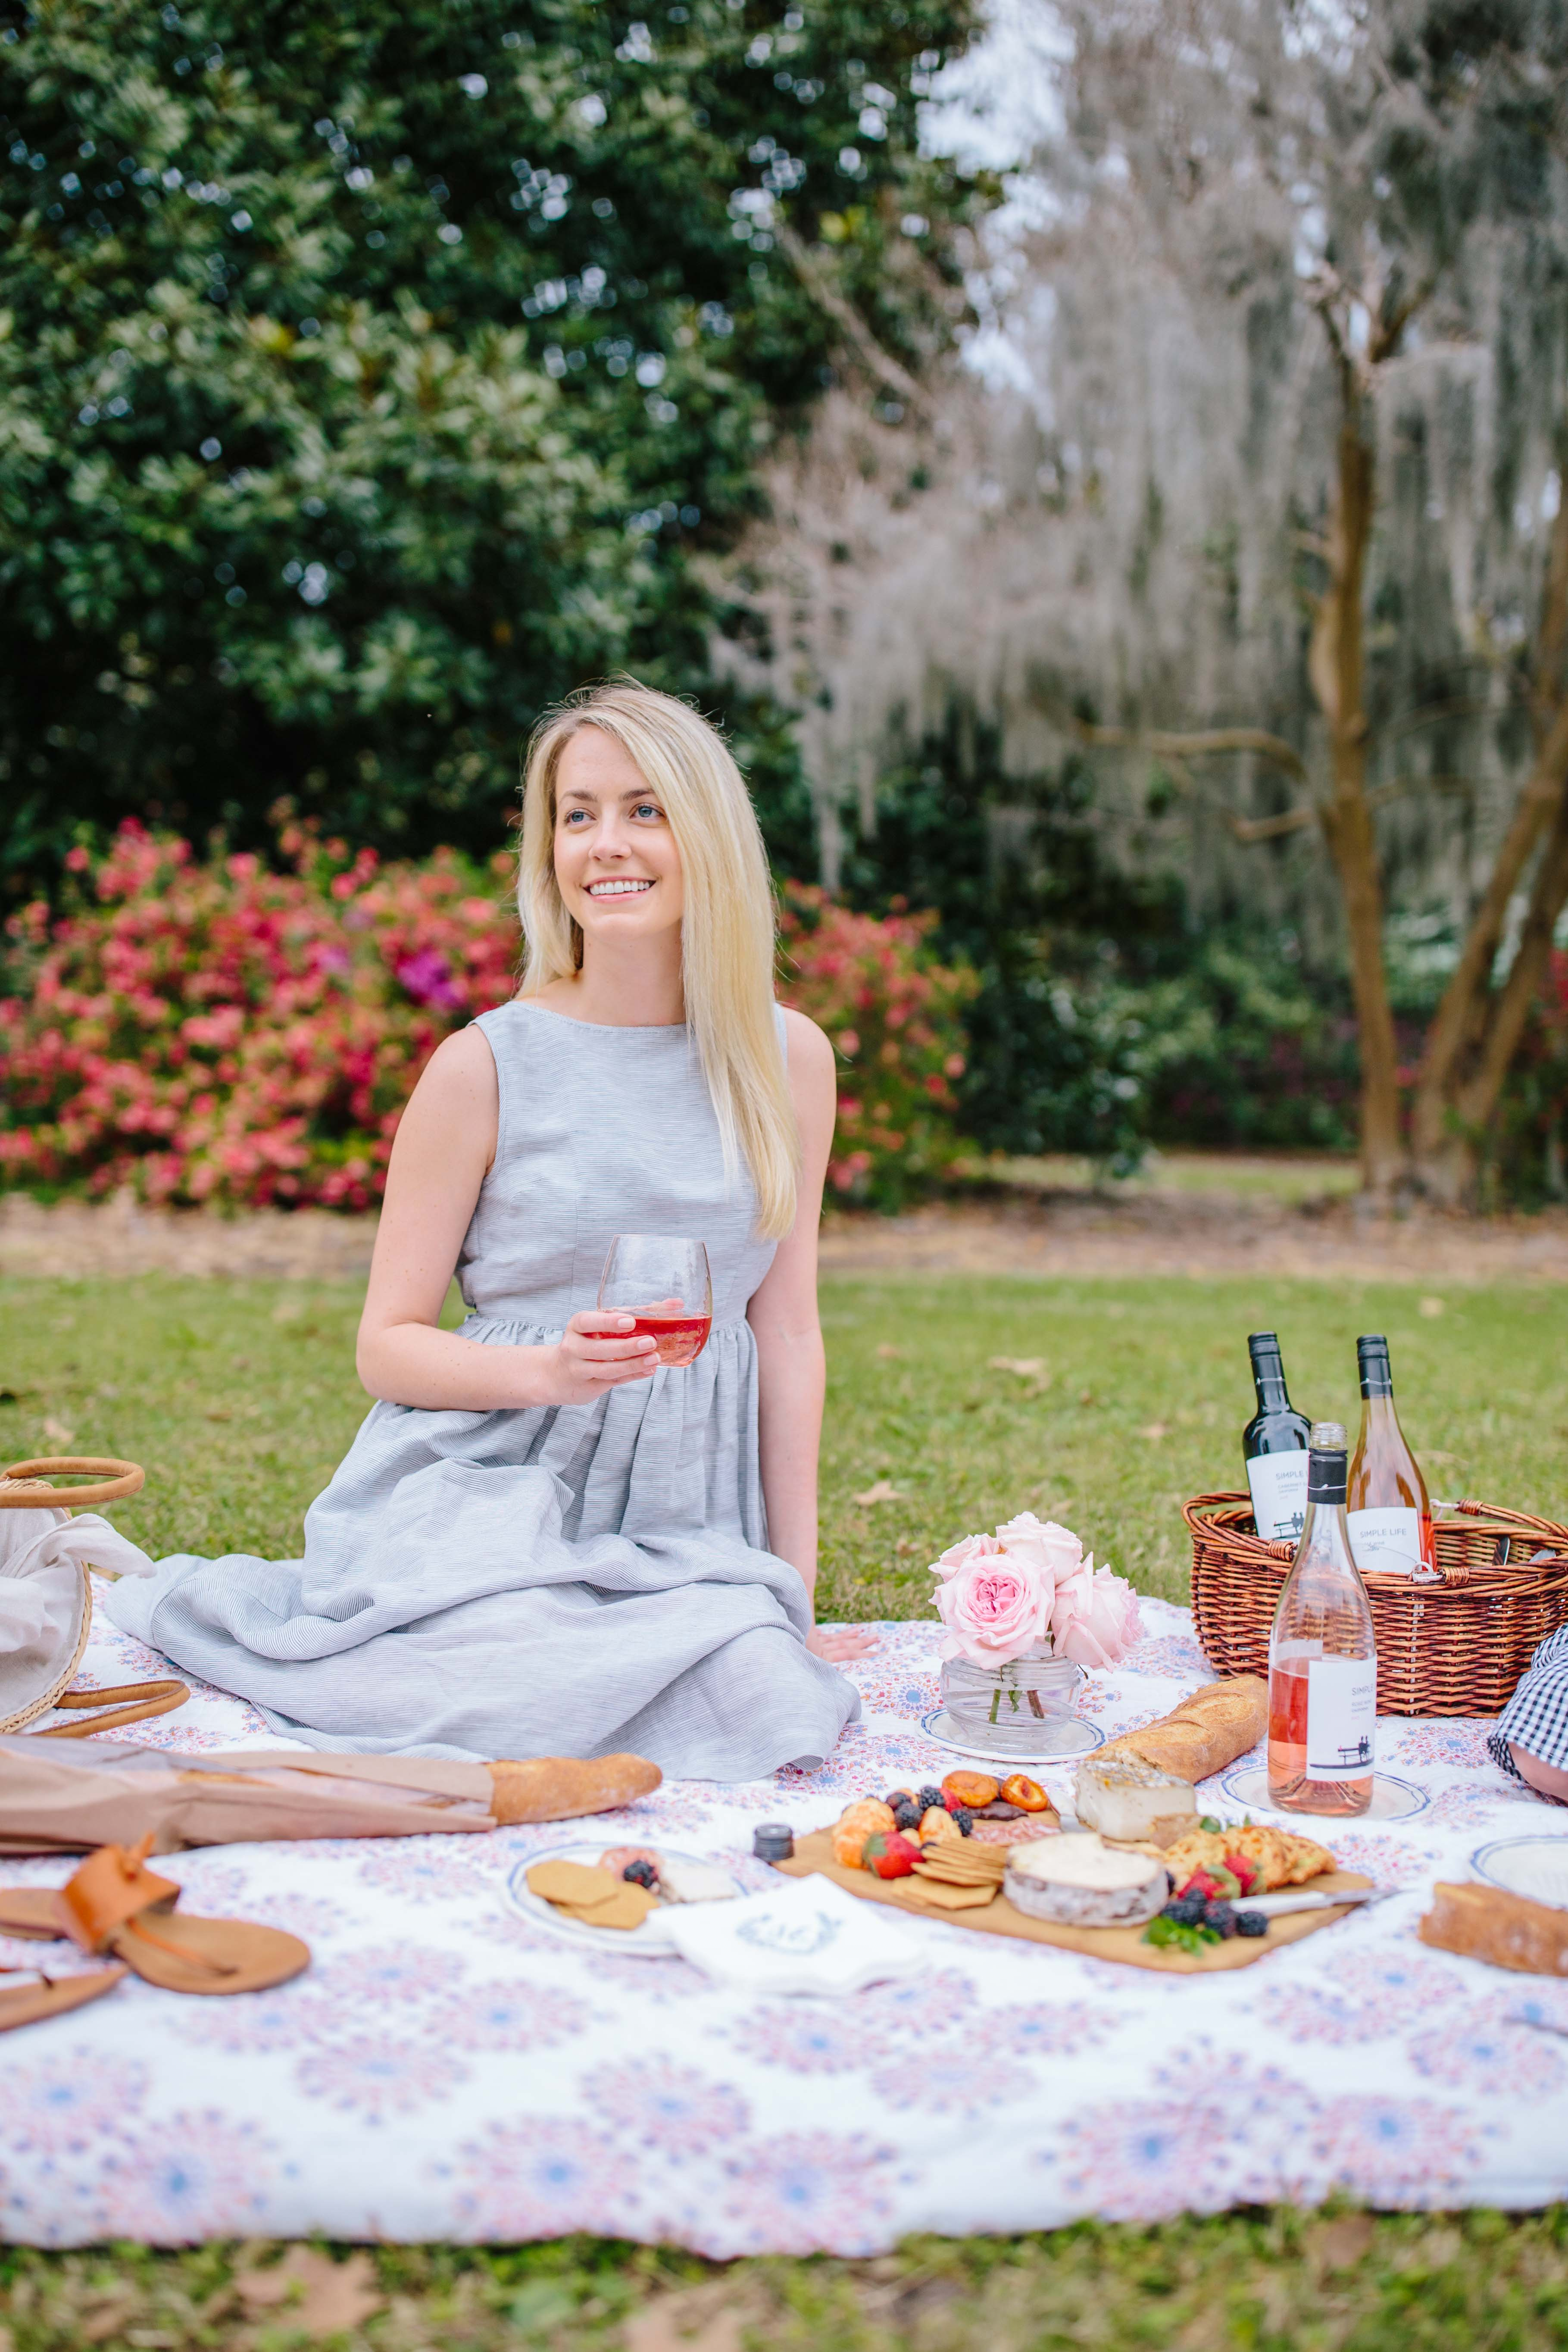 Tips for hosting a picnic in the park for spring // Rhyme & Reason